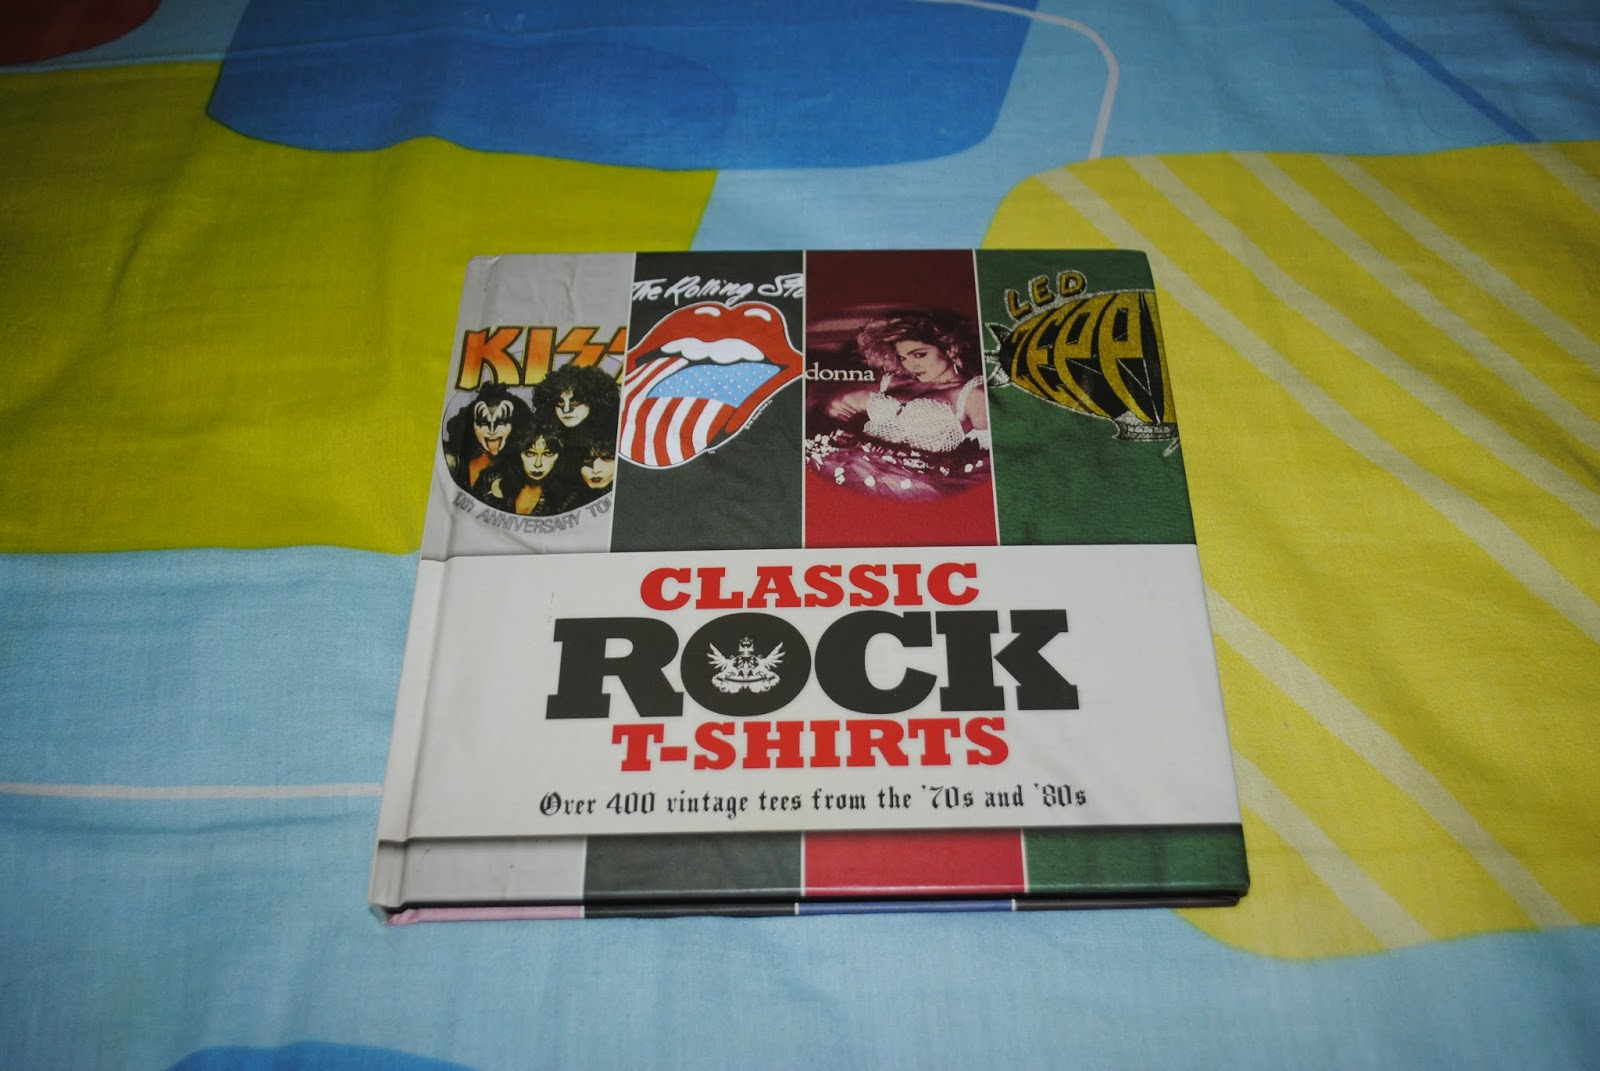 Classic Book Cover Tee Shirts : Classic rock t shirts over vintage tees from the